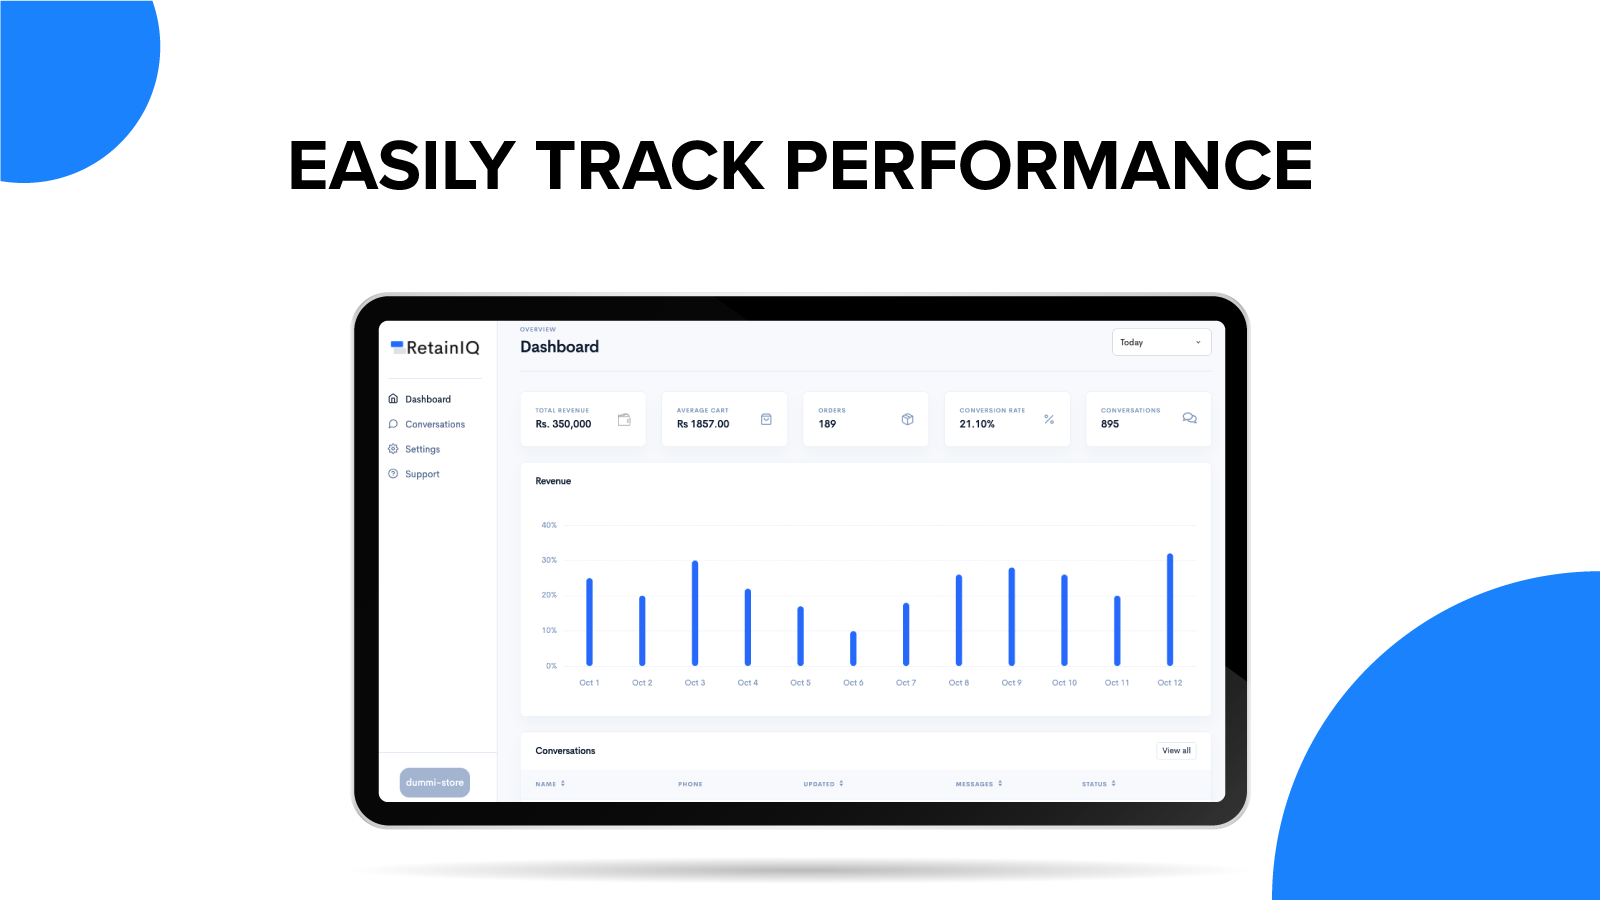 Easily Track Performance